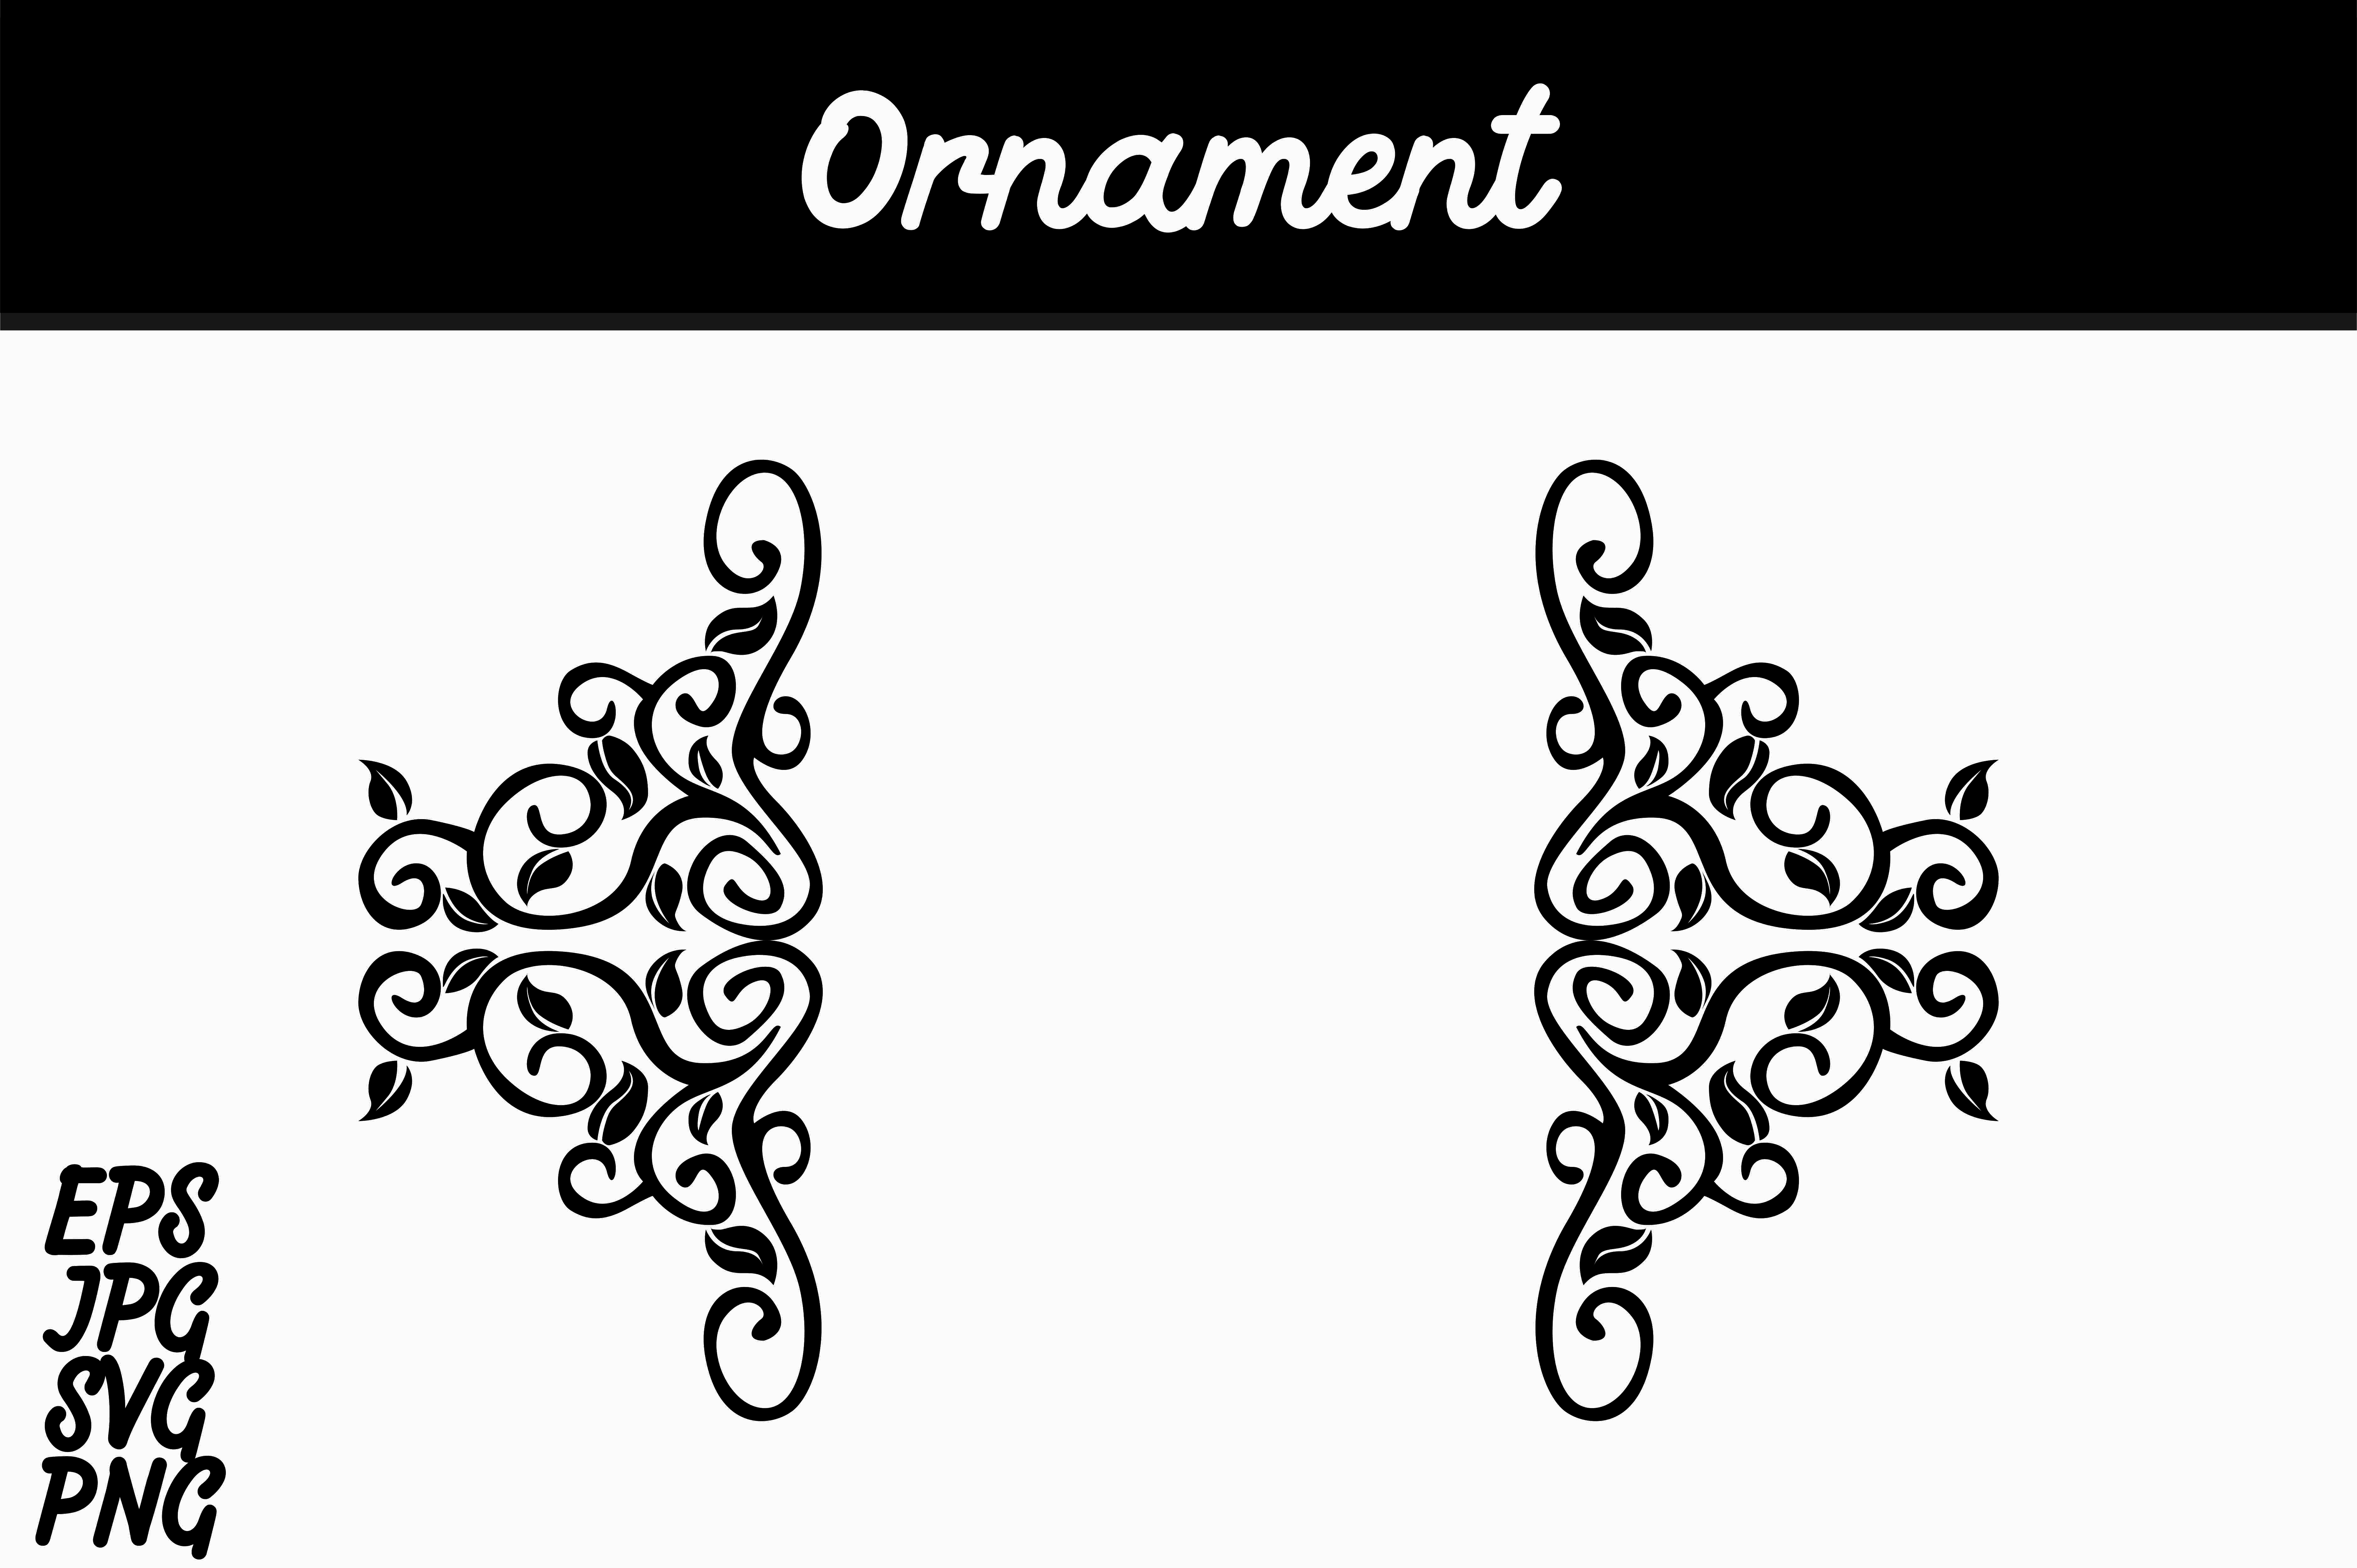 Download Free Ornament Svg Vector Image Graphic By Arief Sapta Adjie for Cricut Explore, Silhouette and other cutting machines.